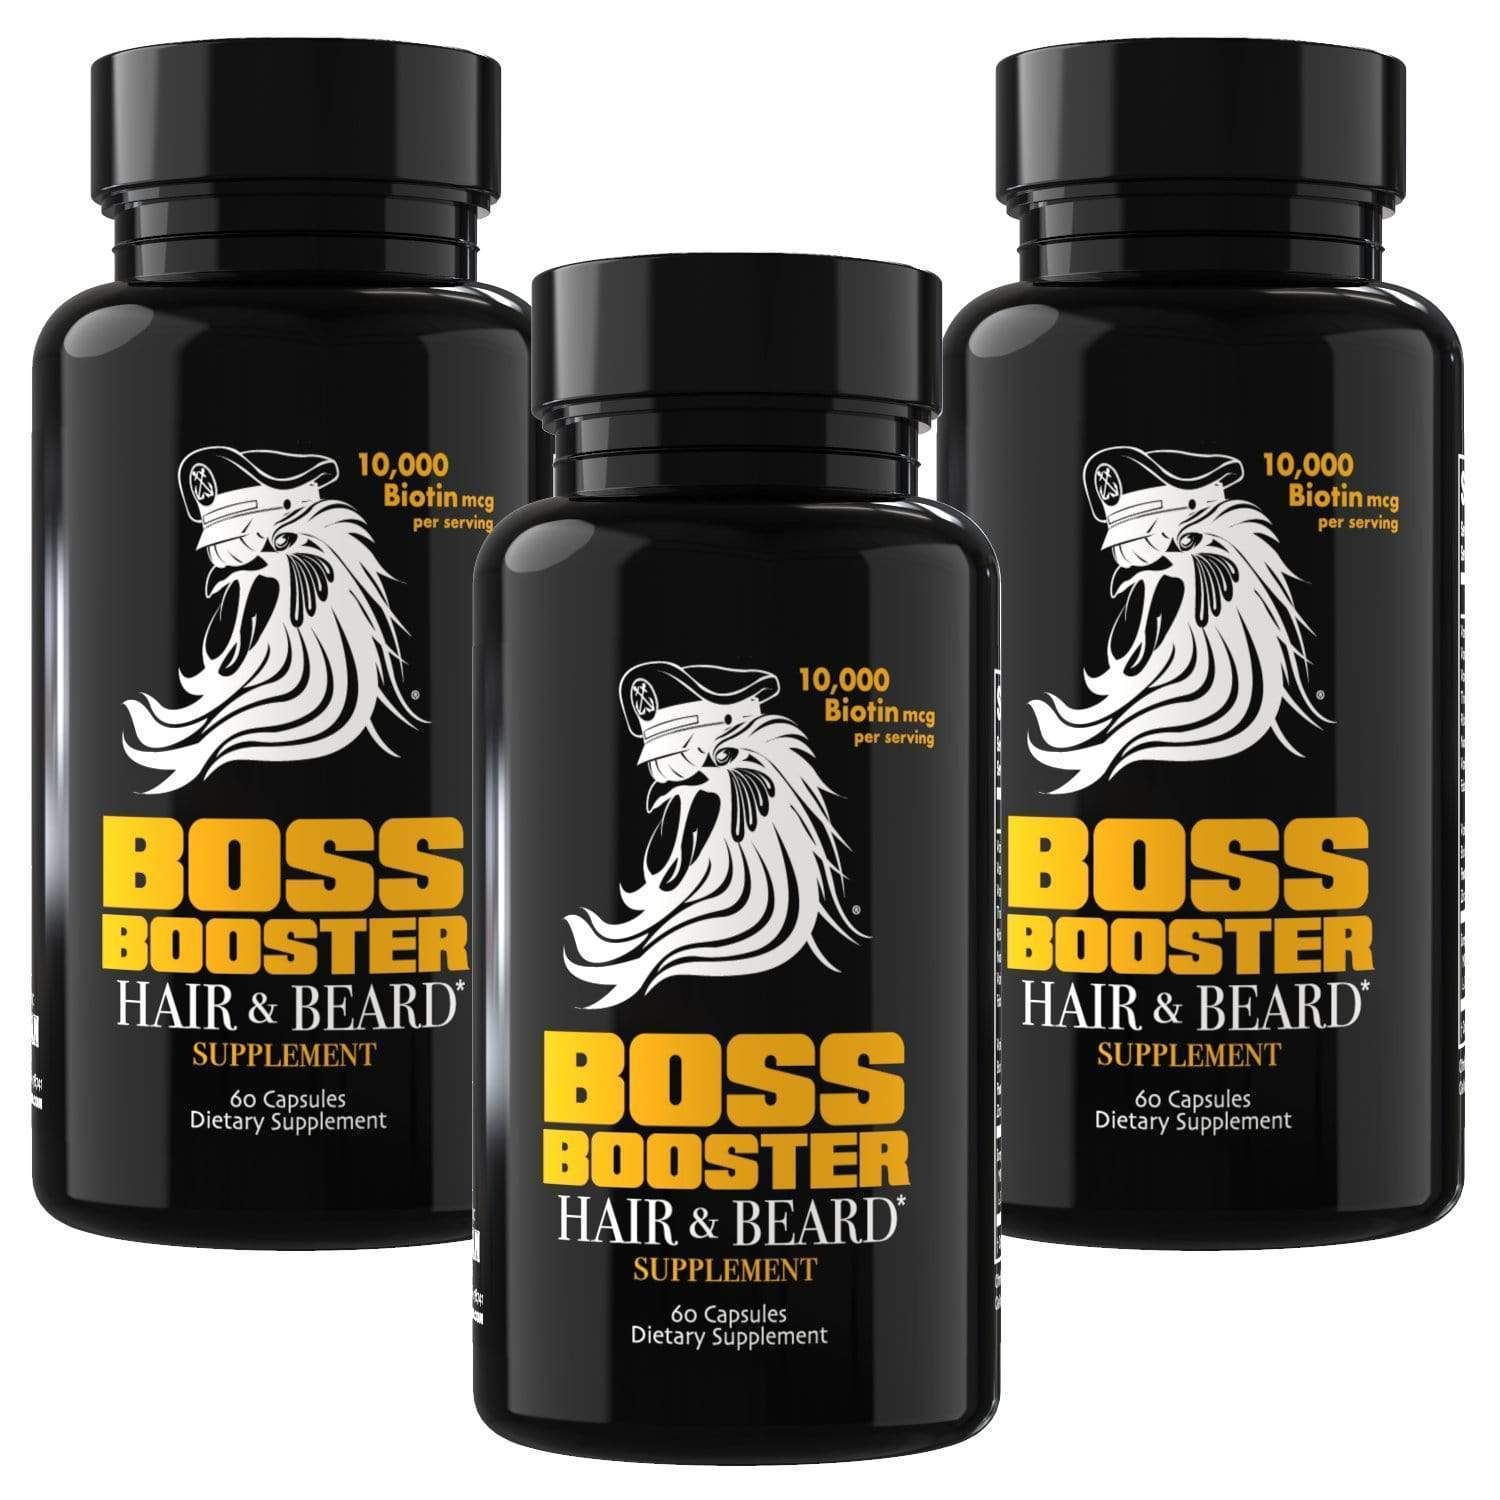 Boss Booster Beard & Hair Growth Supplements - 3 Pack